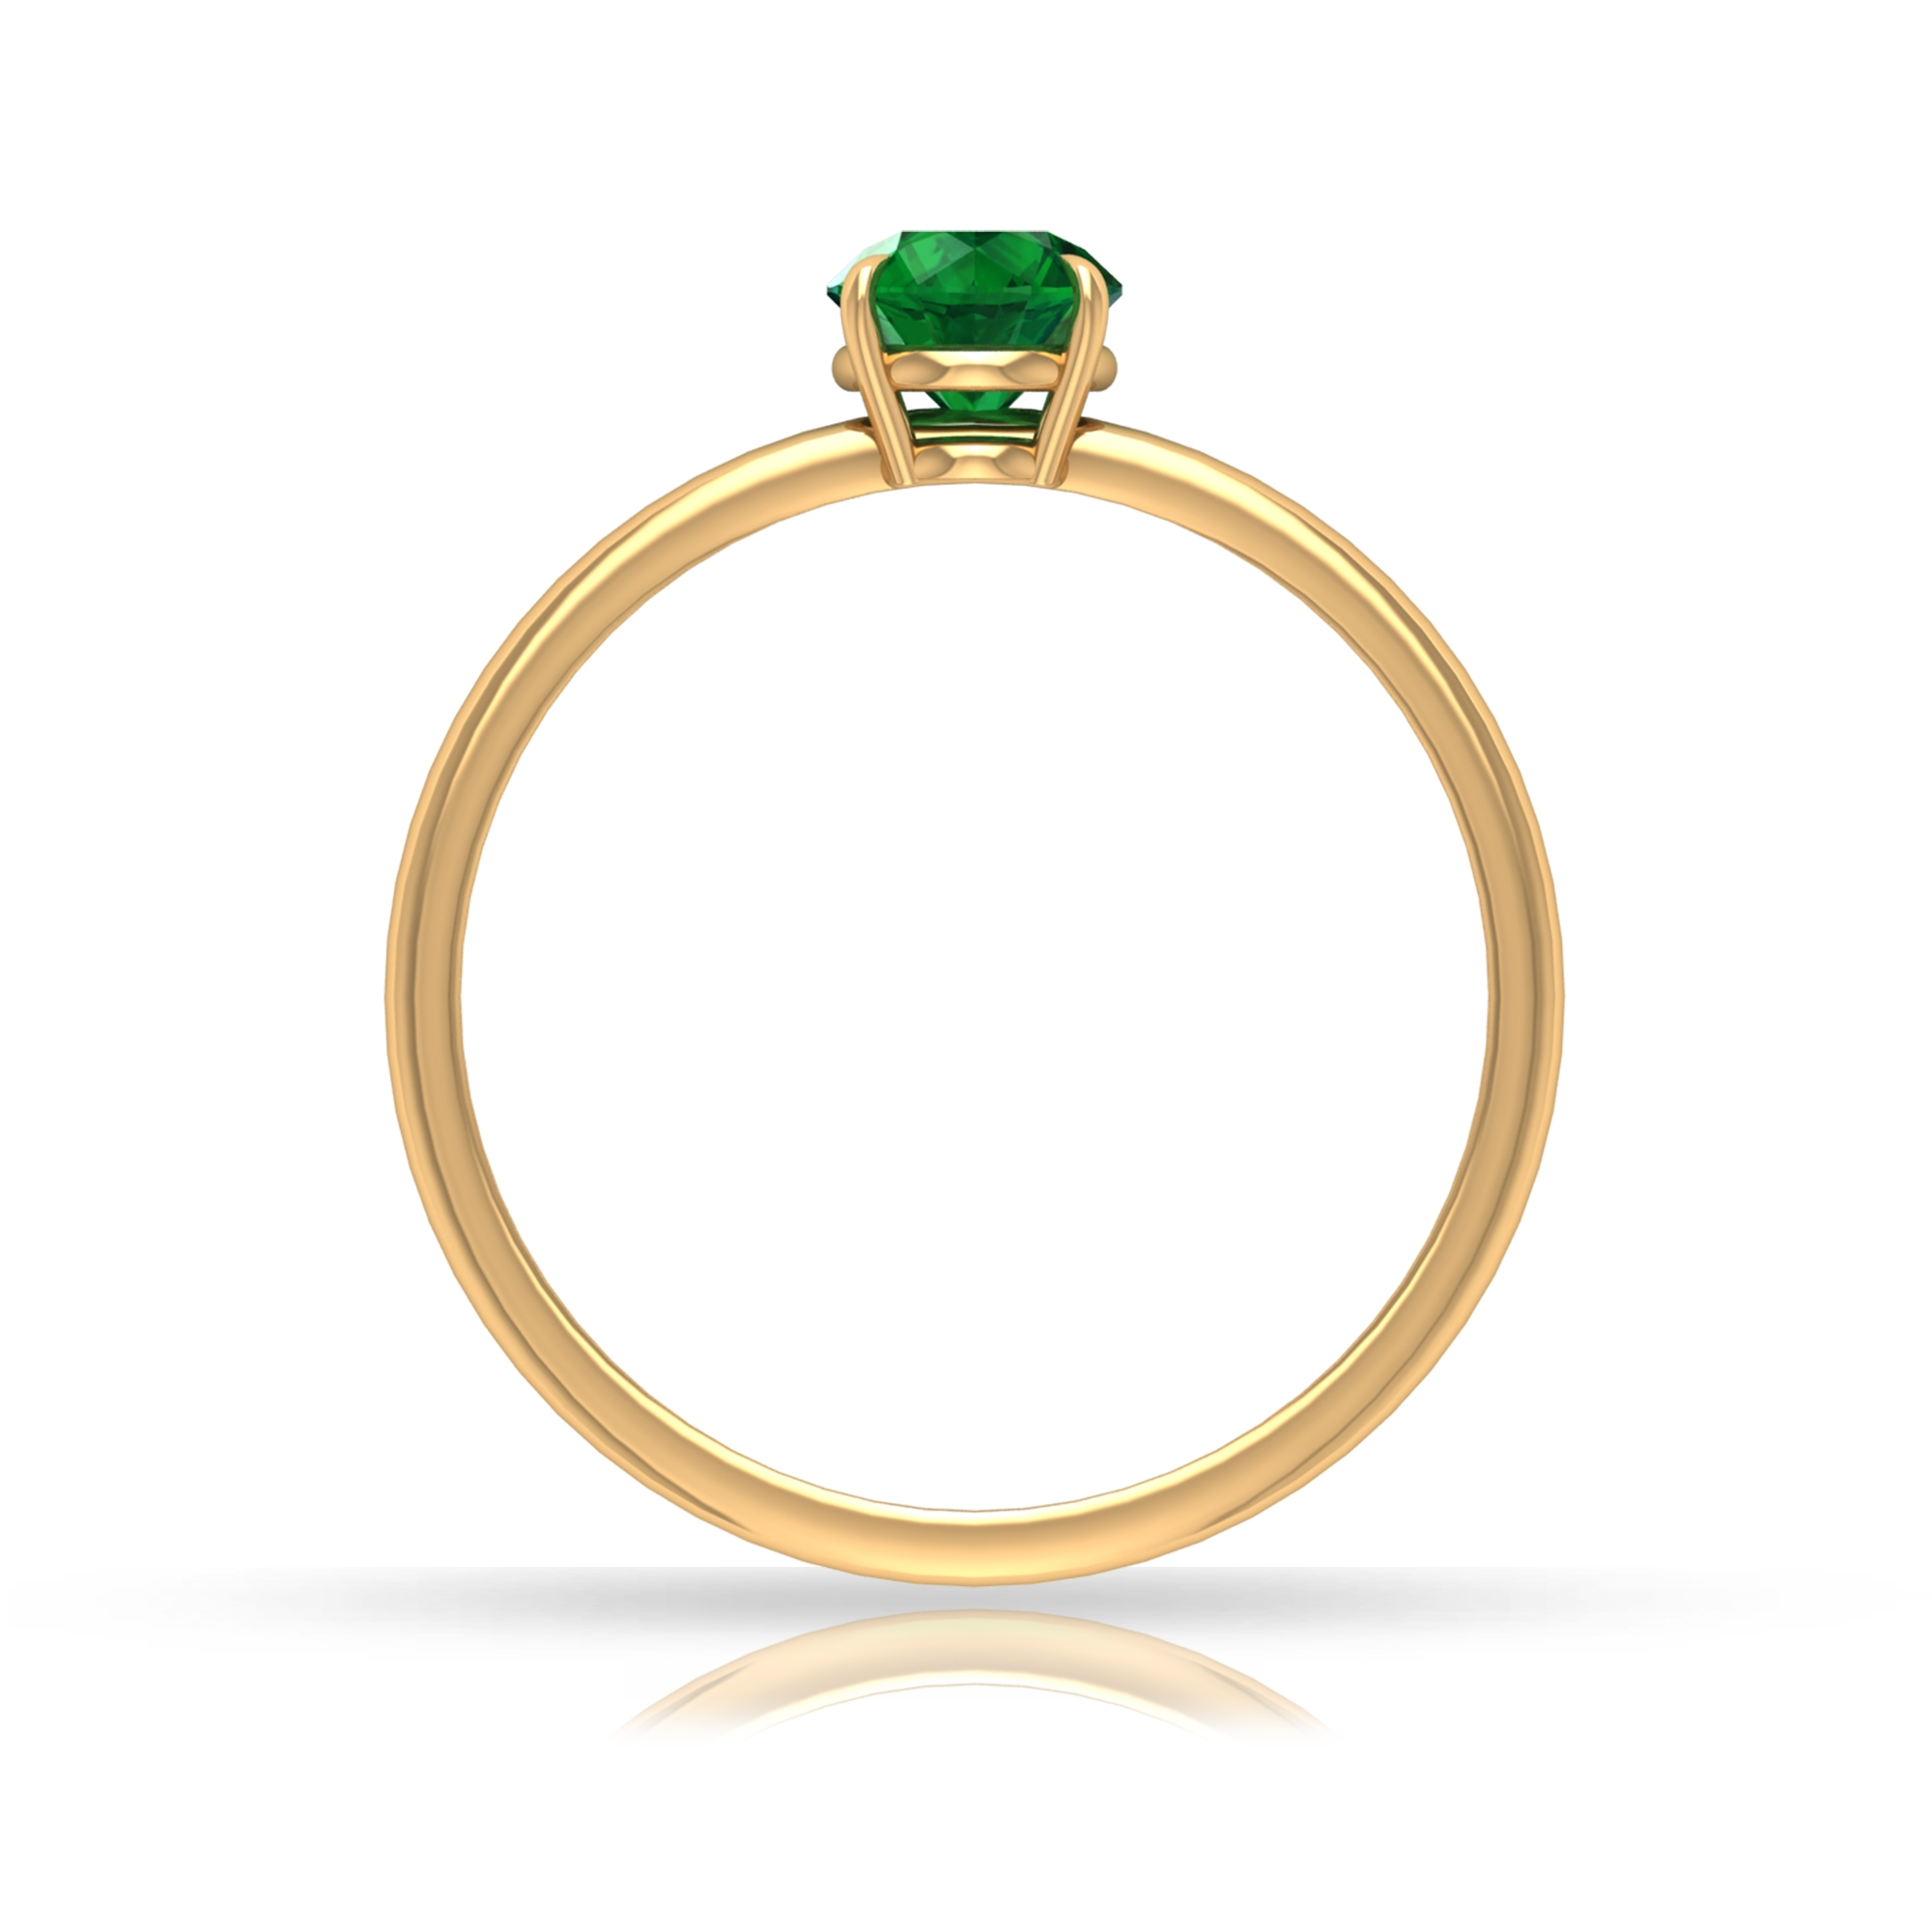 5 MM Round Cut Emerald Solitaire May Birthstone Claw Set Ring for Women